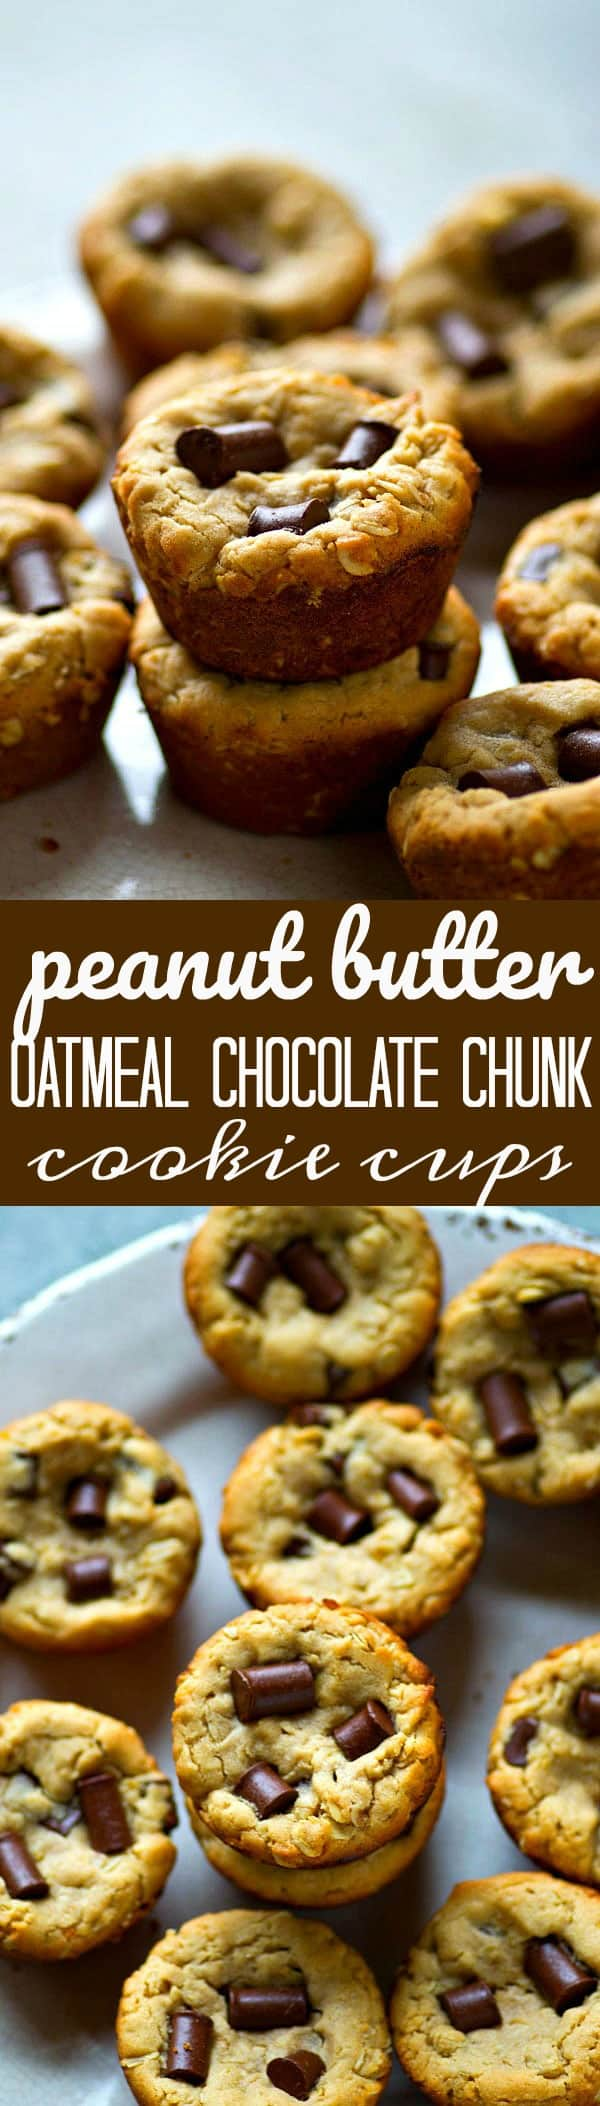 Peanut butter, oatmeal, and chocolate chunks are a killer trio in these SUPER soft and chewy oatmeal chocolate chunk cookie cups! You won't be able to stop at only one.